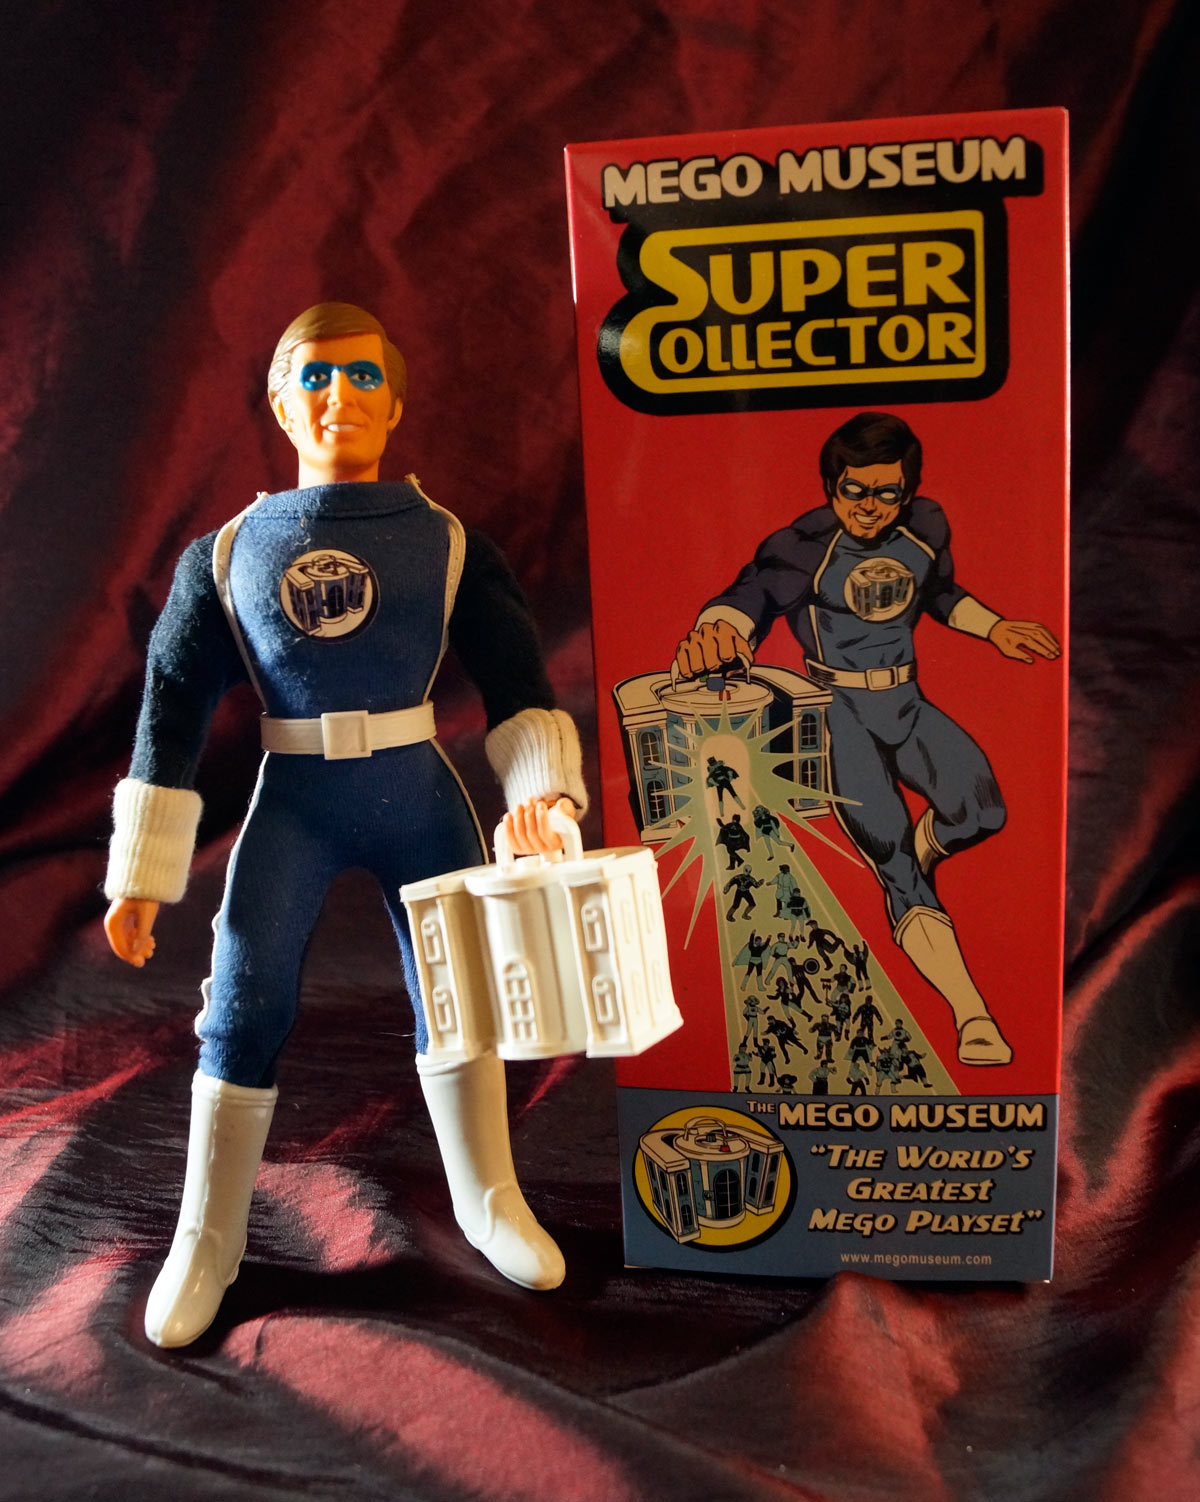 Mego Museum Super Collector | Odeon Toys